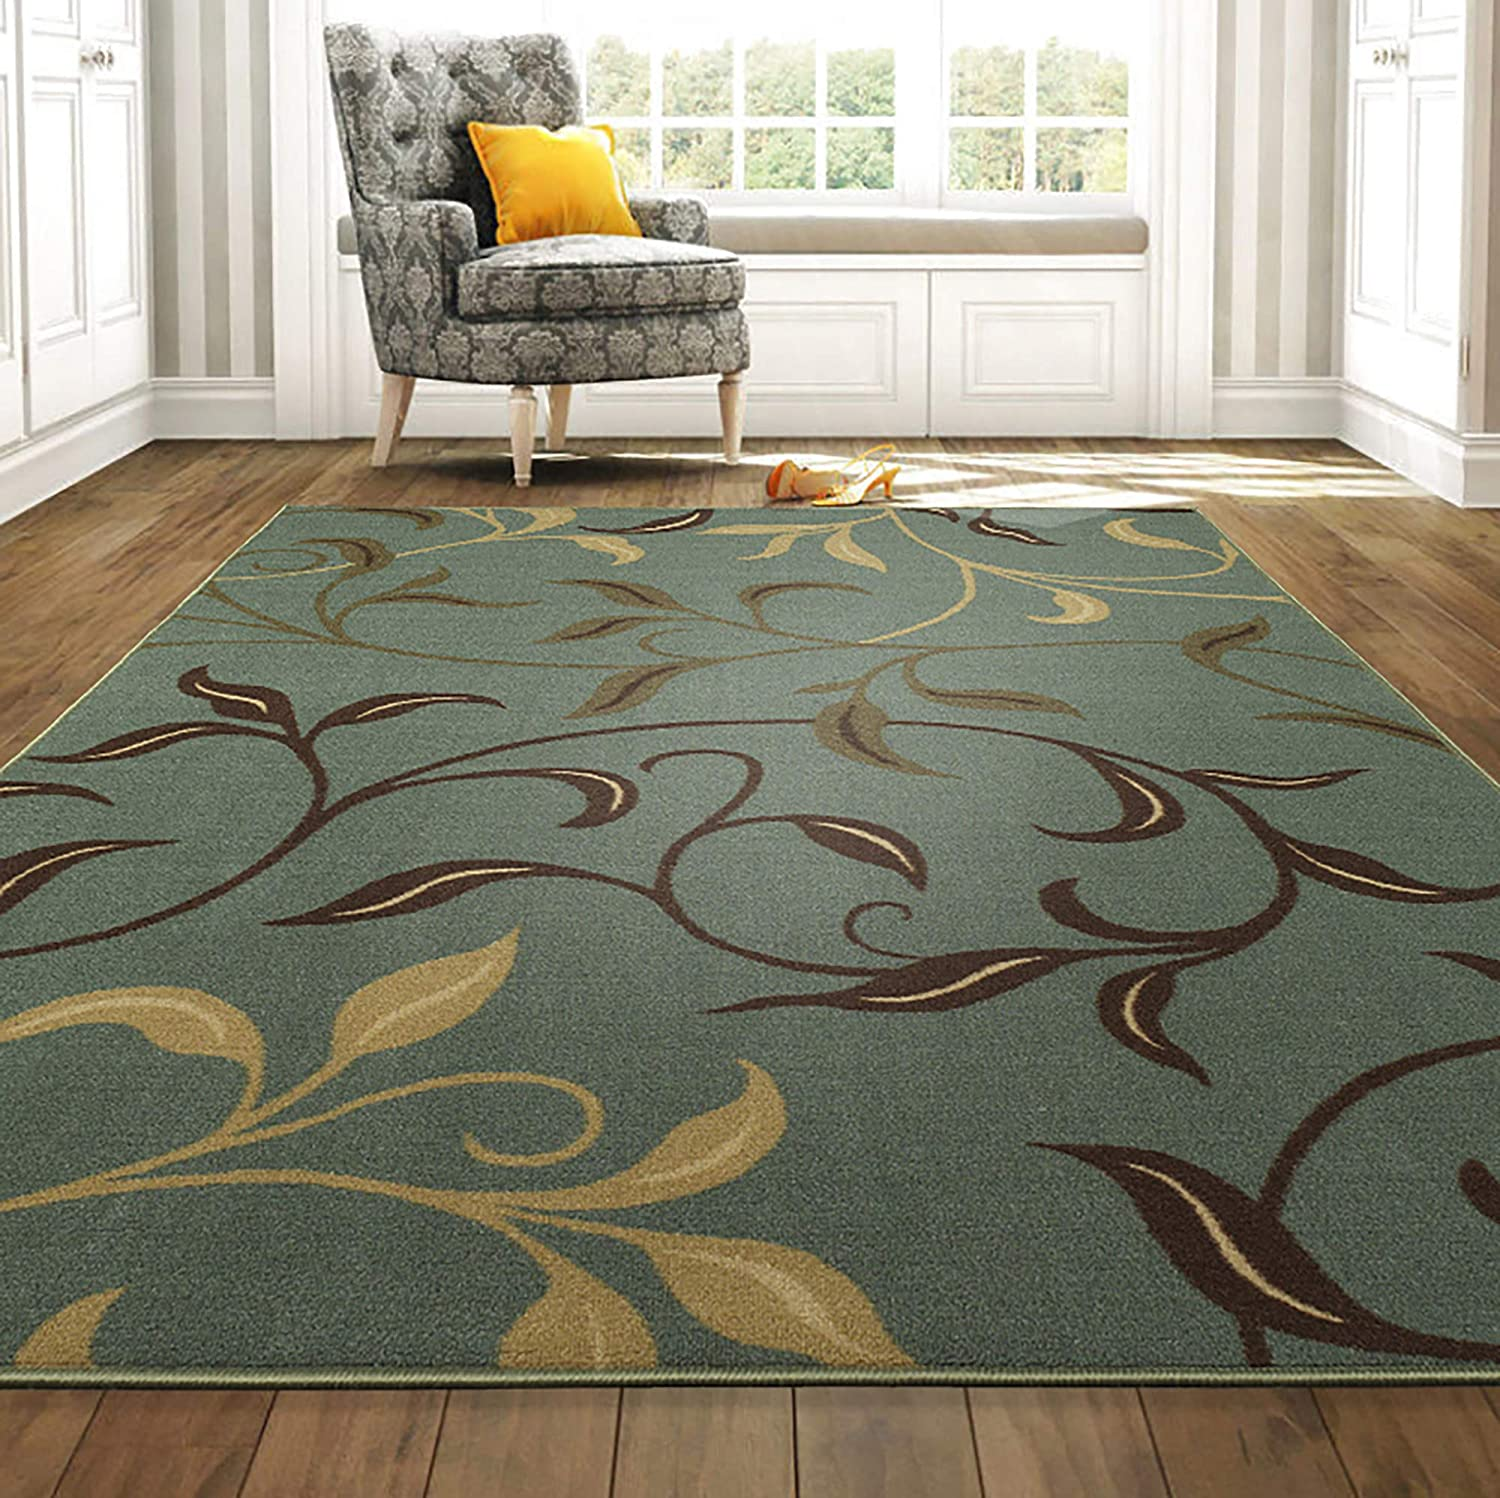 Ottomanson Home Collection Modern Max 59% OFF Area Rug X free 6'6